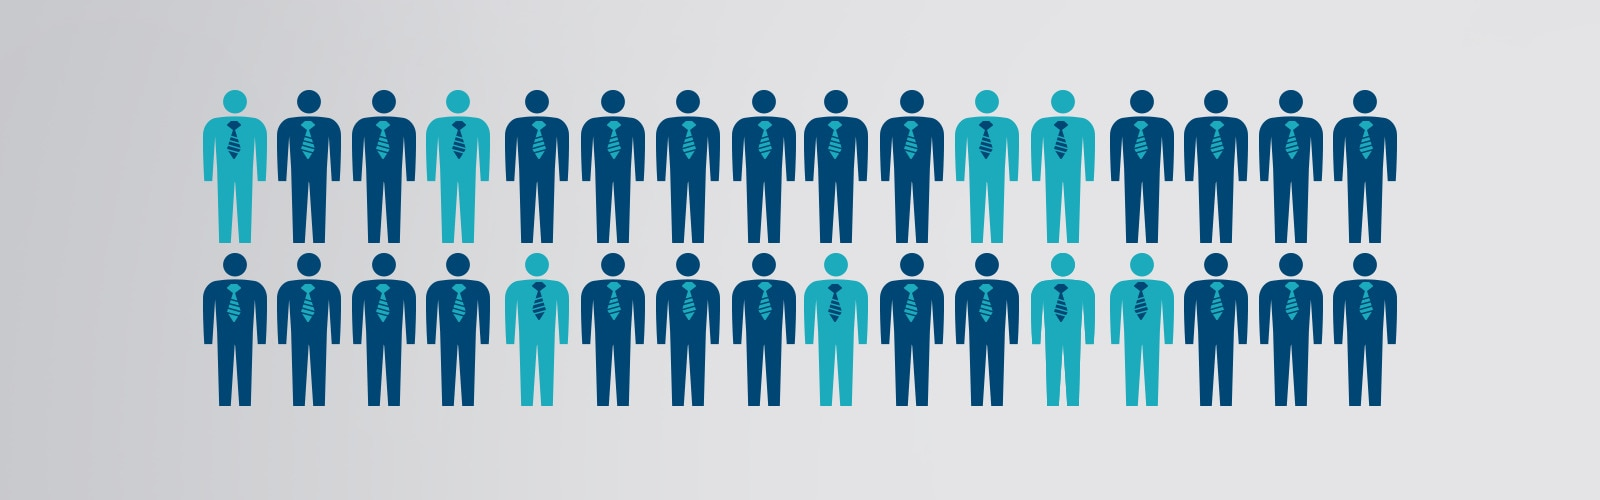 Illustrated people in two rows